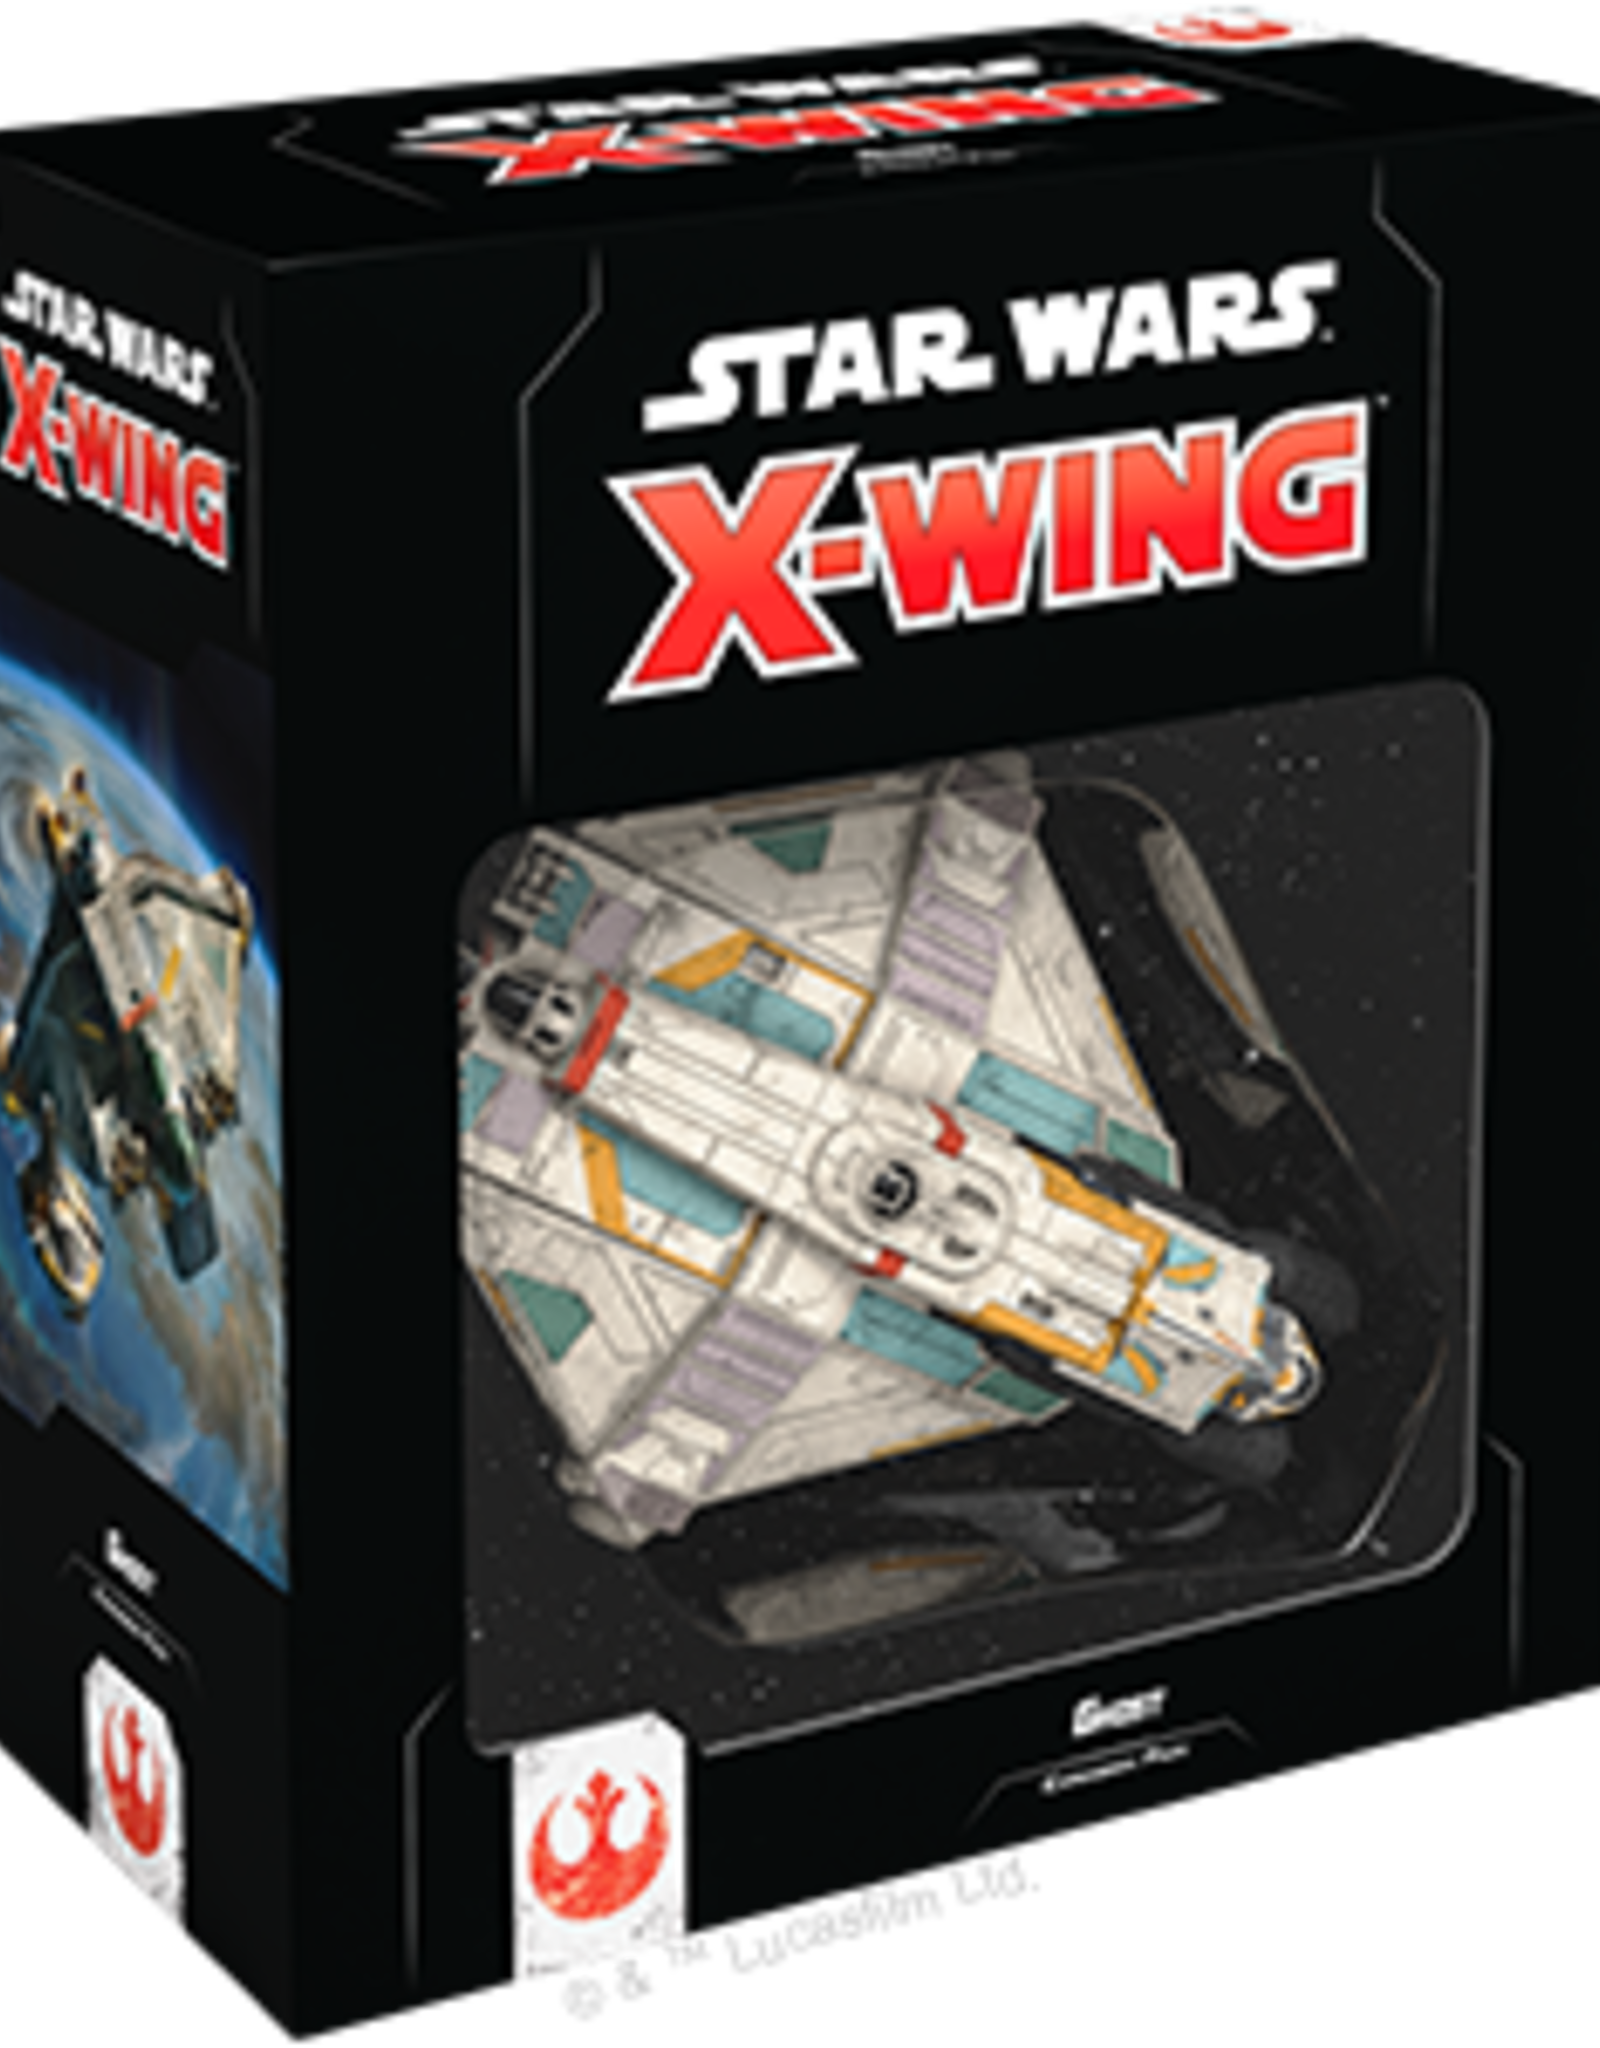 Star Wars X-Wing: Ghost Expansion